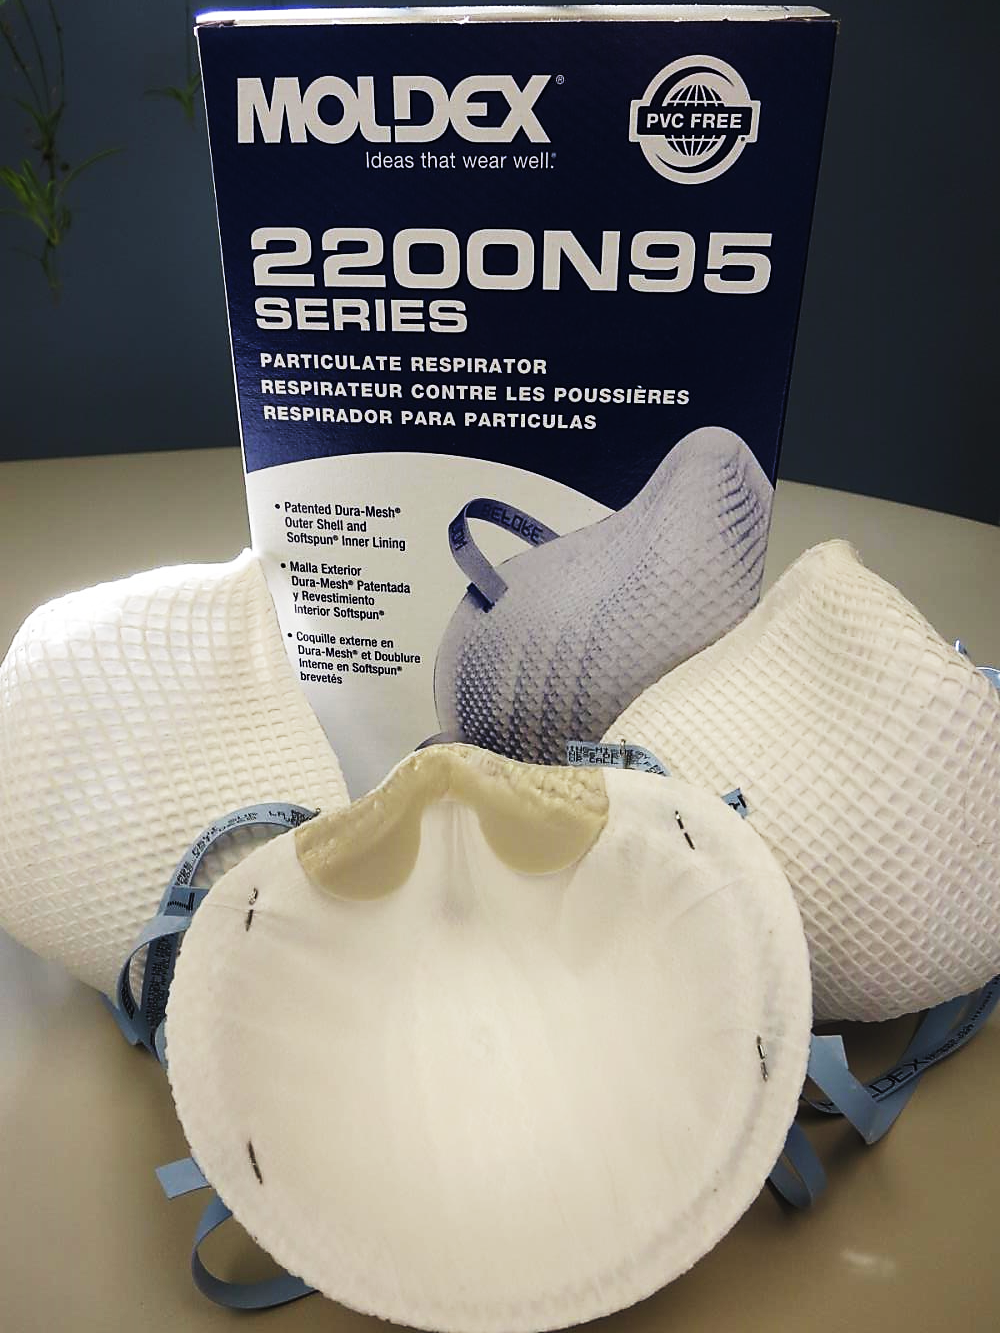 2200 Moldex® 2200 N95 NIOSH Approved Disposable Particulate Respirator - Made in the USA